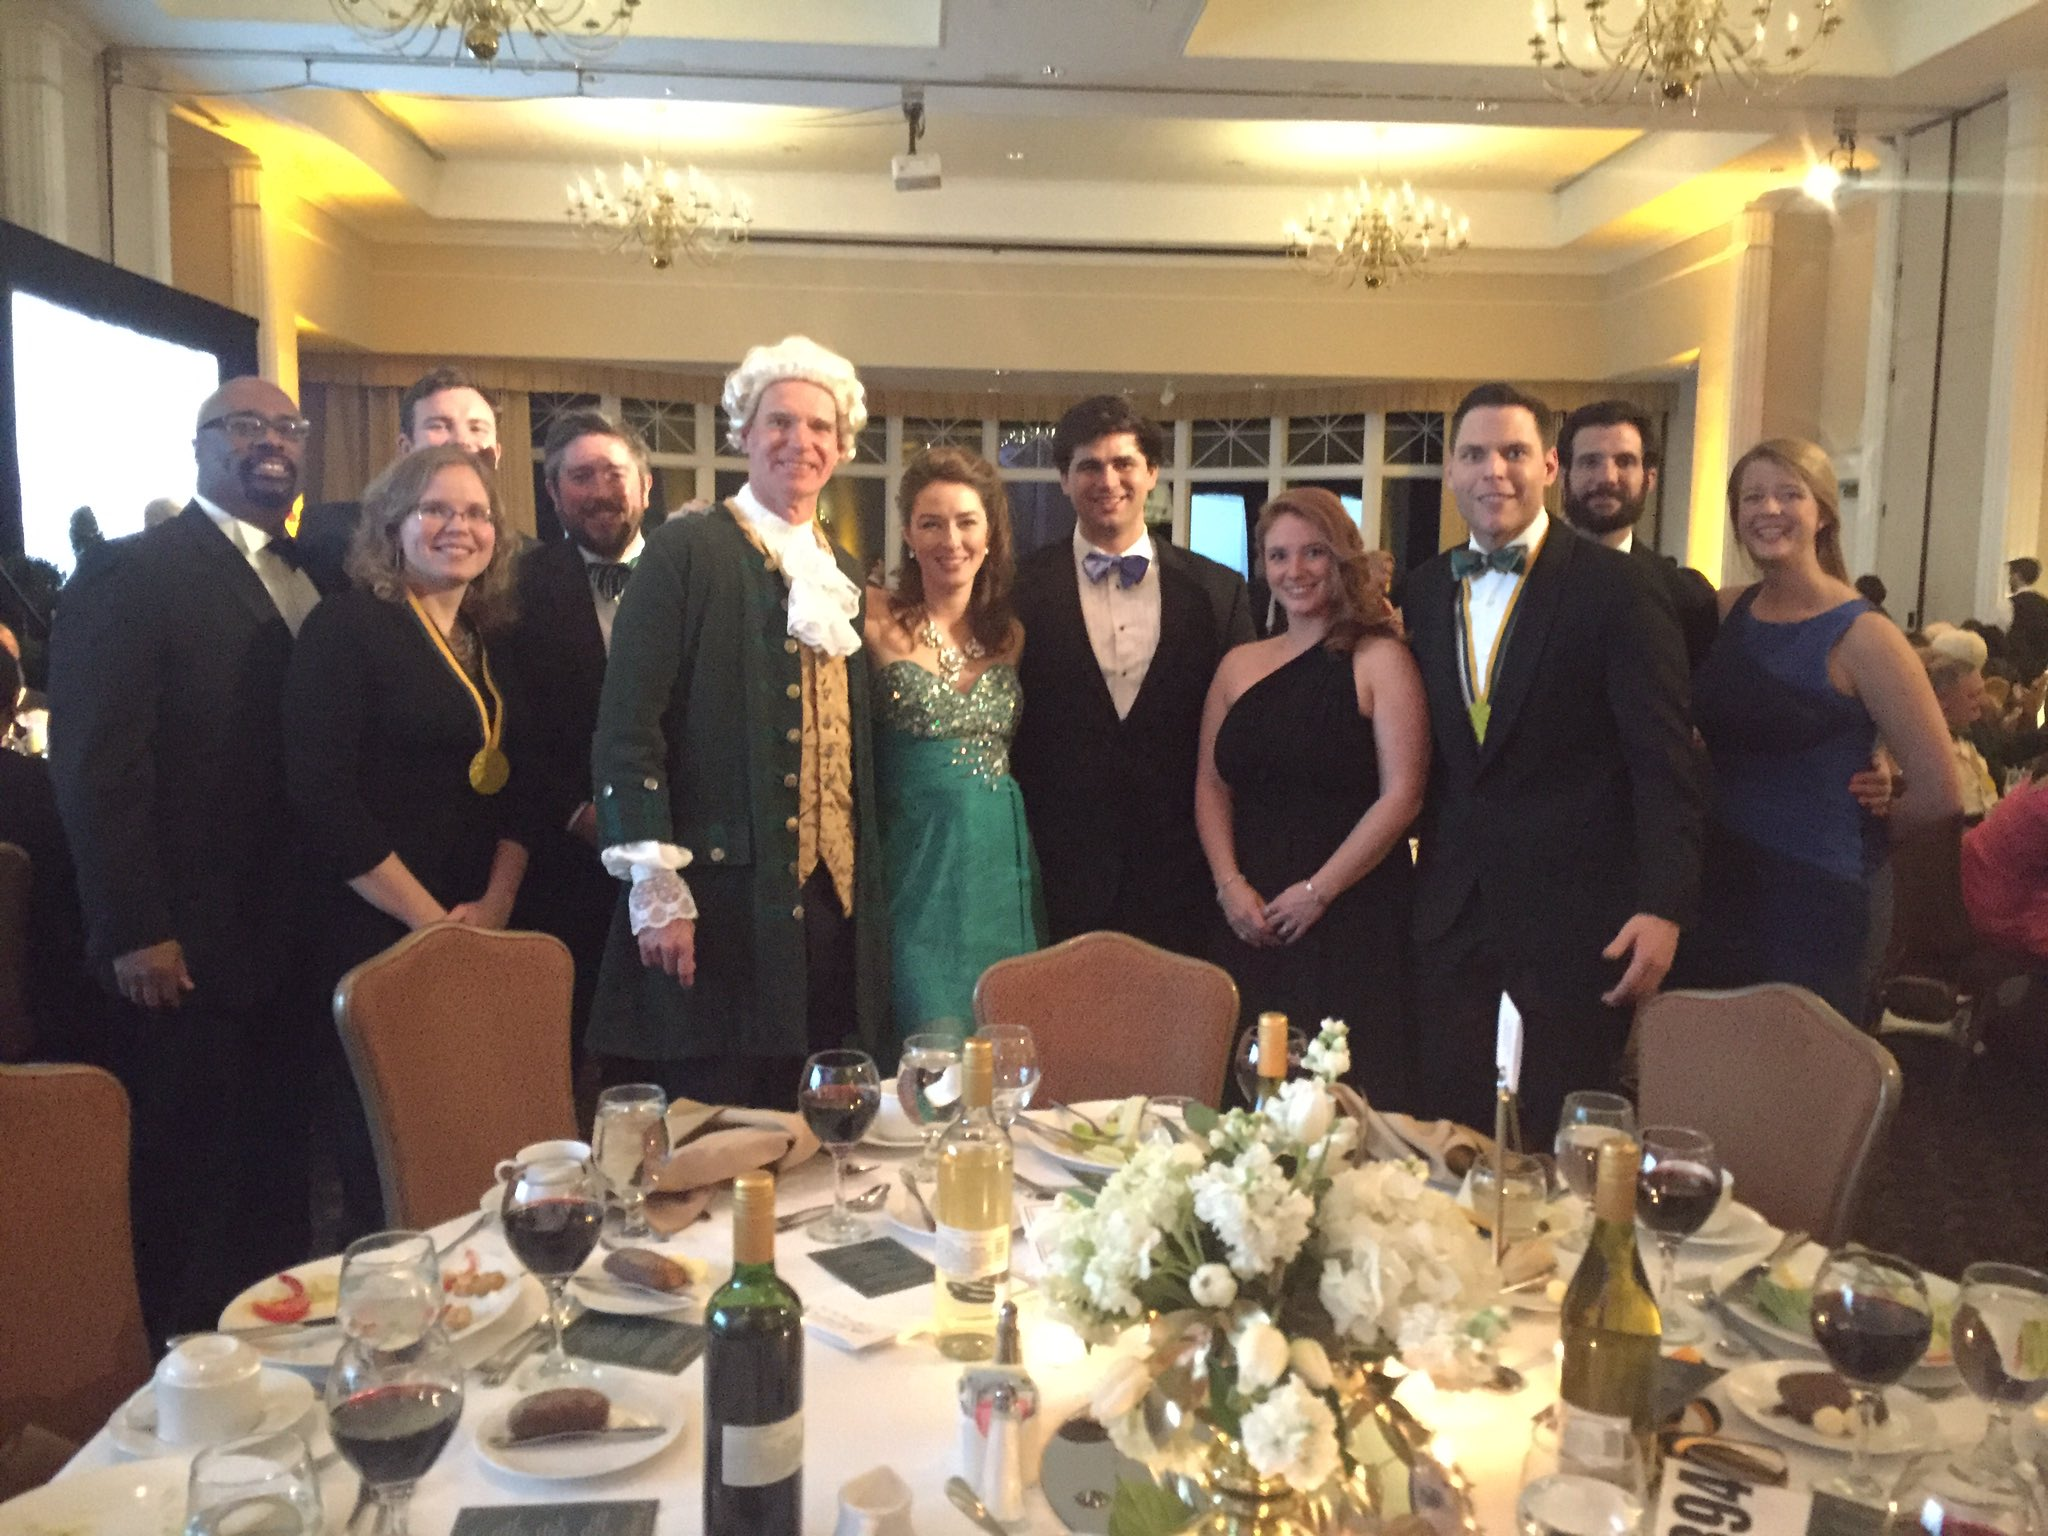 Celebrating 324 years of @williamandmary with Lord Botetourt himself #wmCharterDay https://t.co/L9juRFwtB6